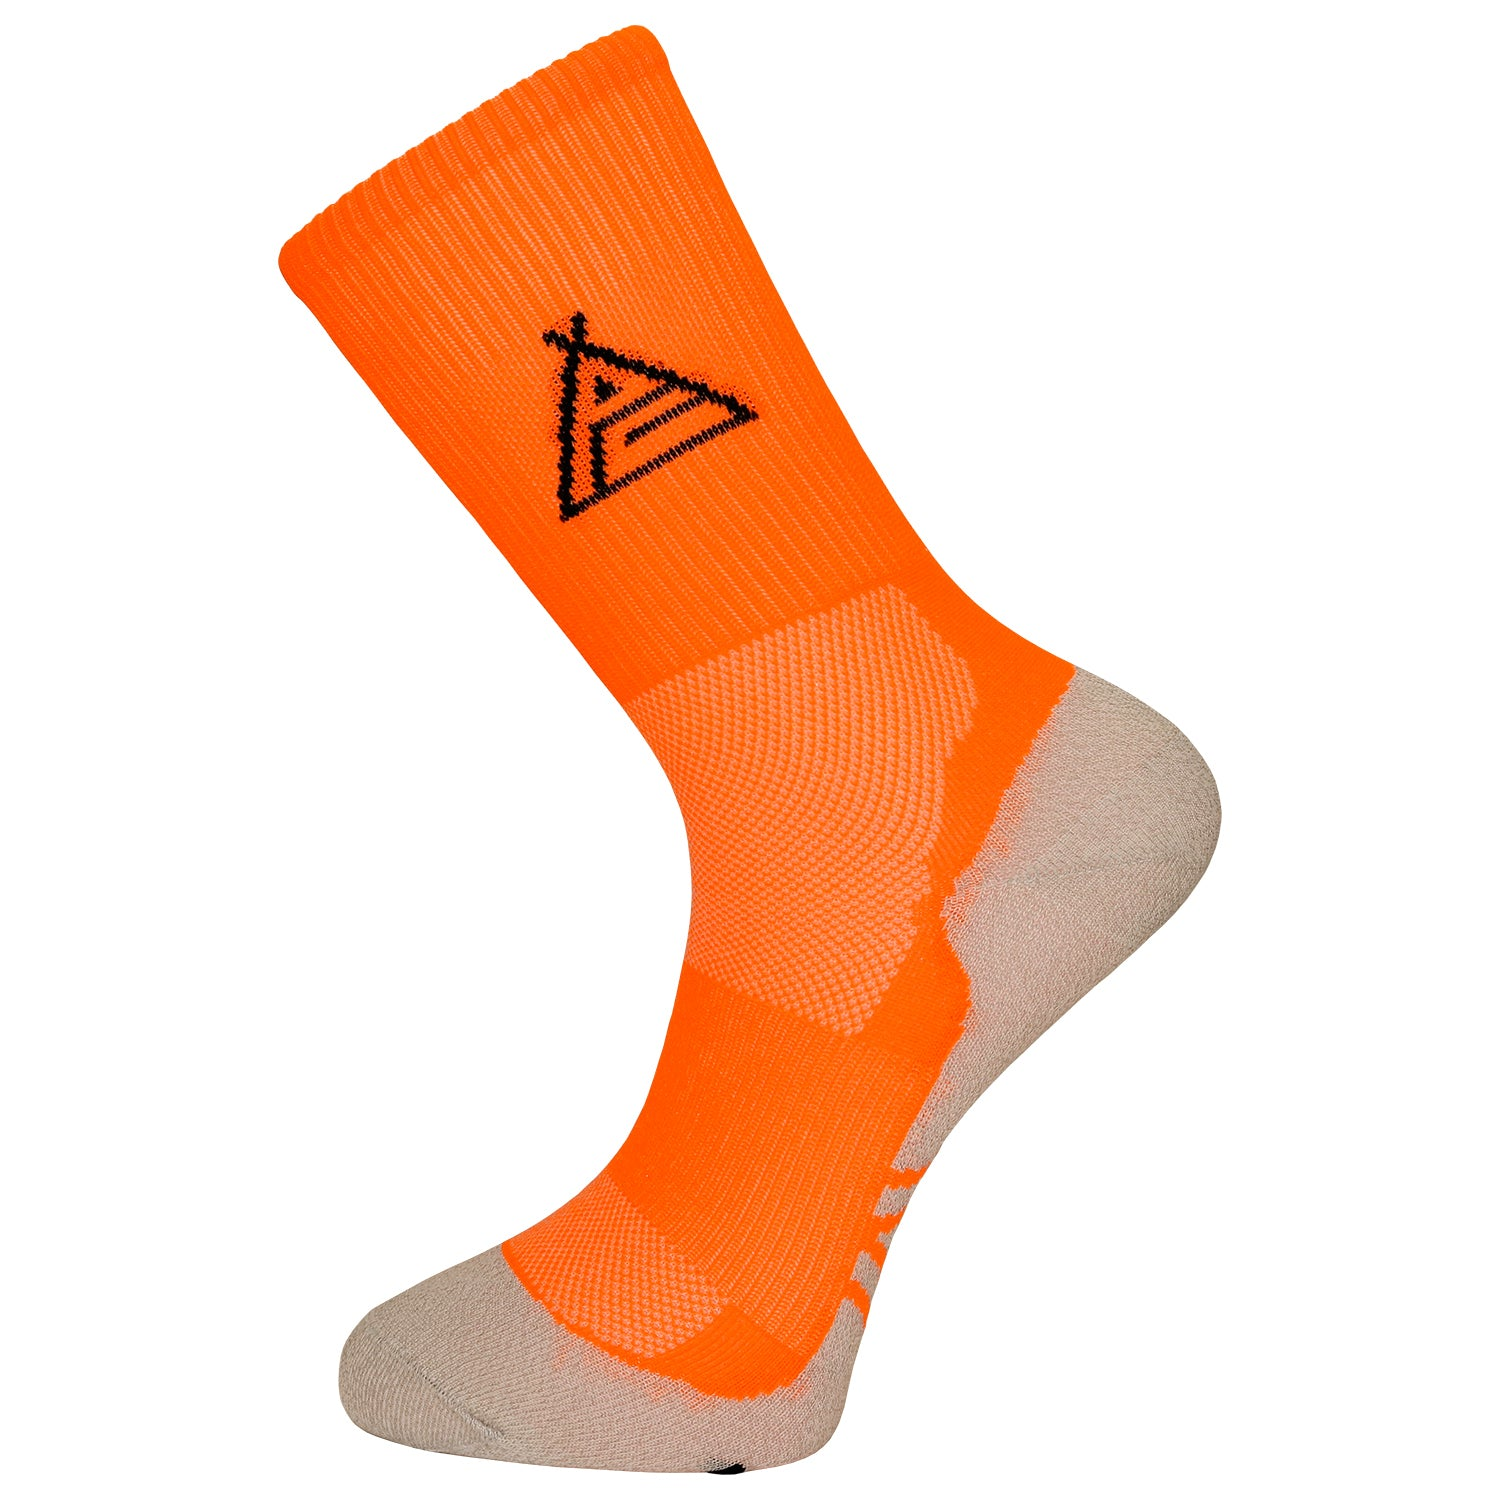 Prendas Spring/Summer Dryarn-Carbon Fluro Orange Socks